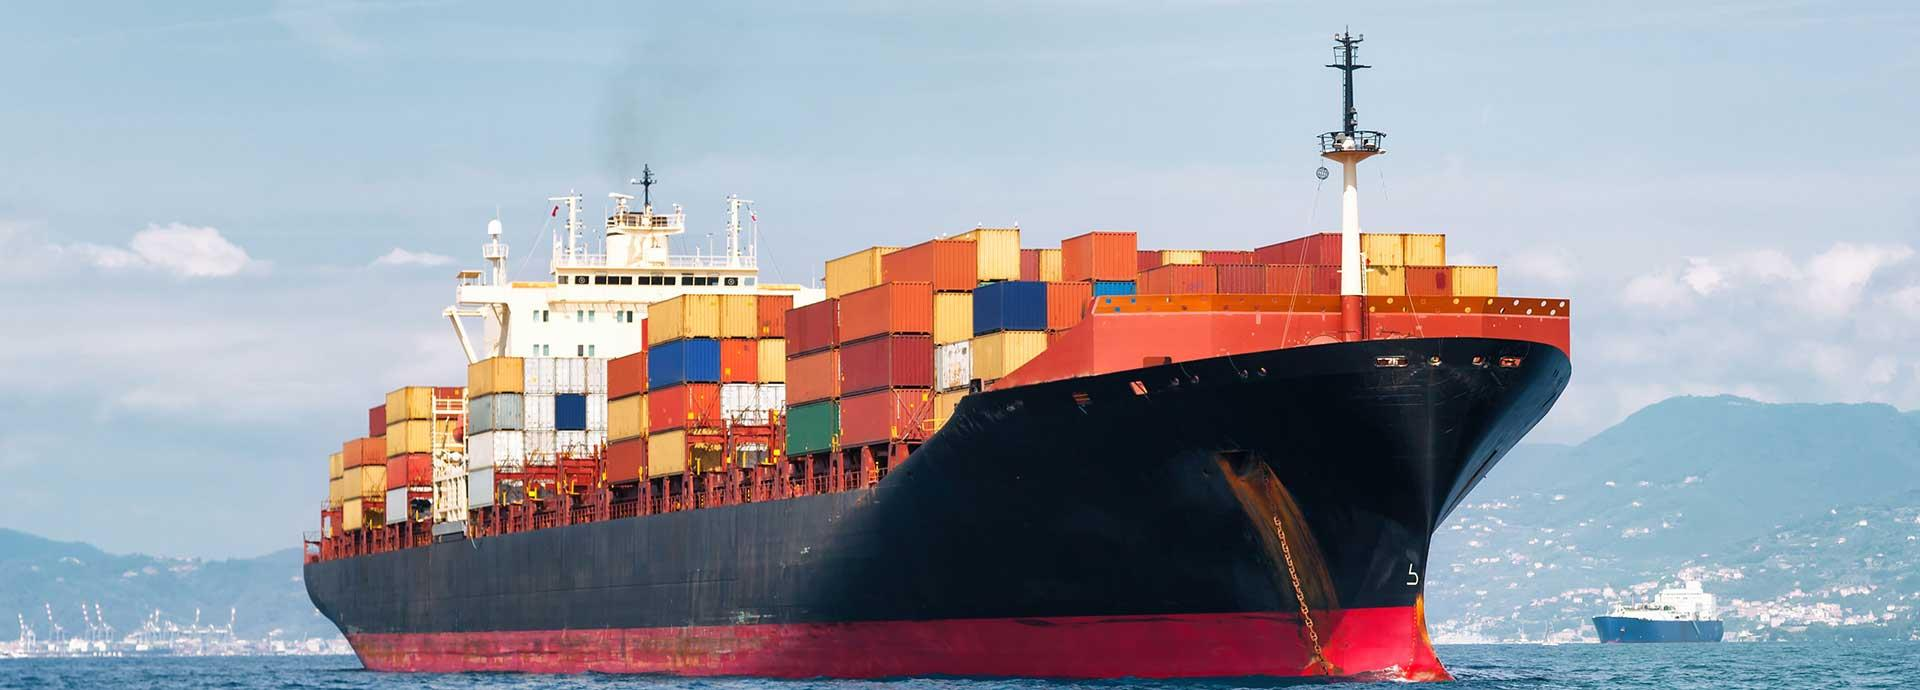 Pollution police: How are ship emissions monitored?